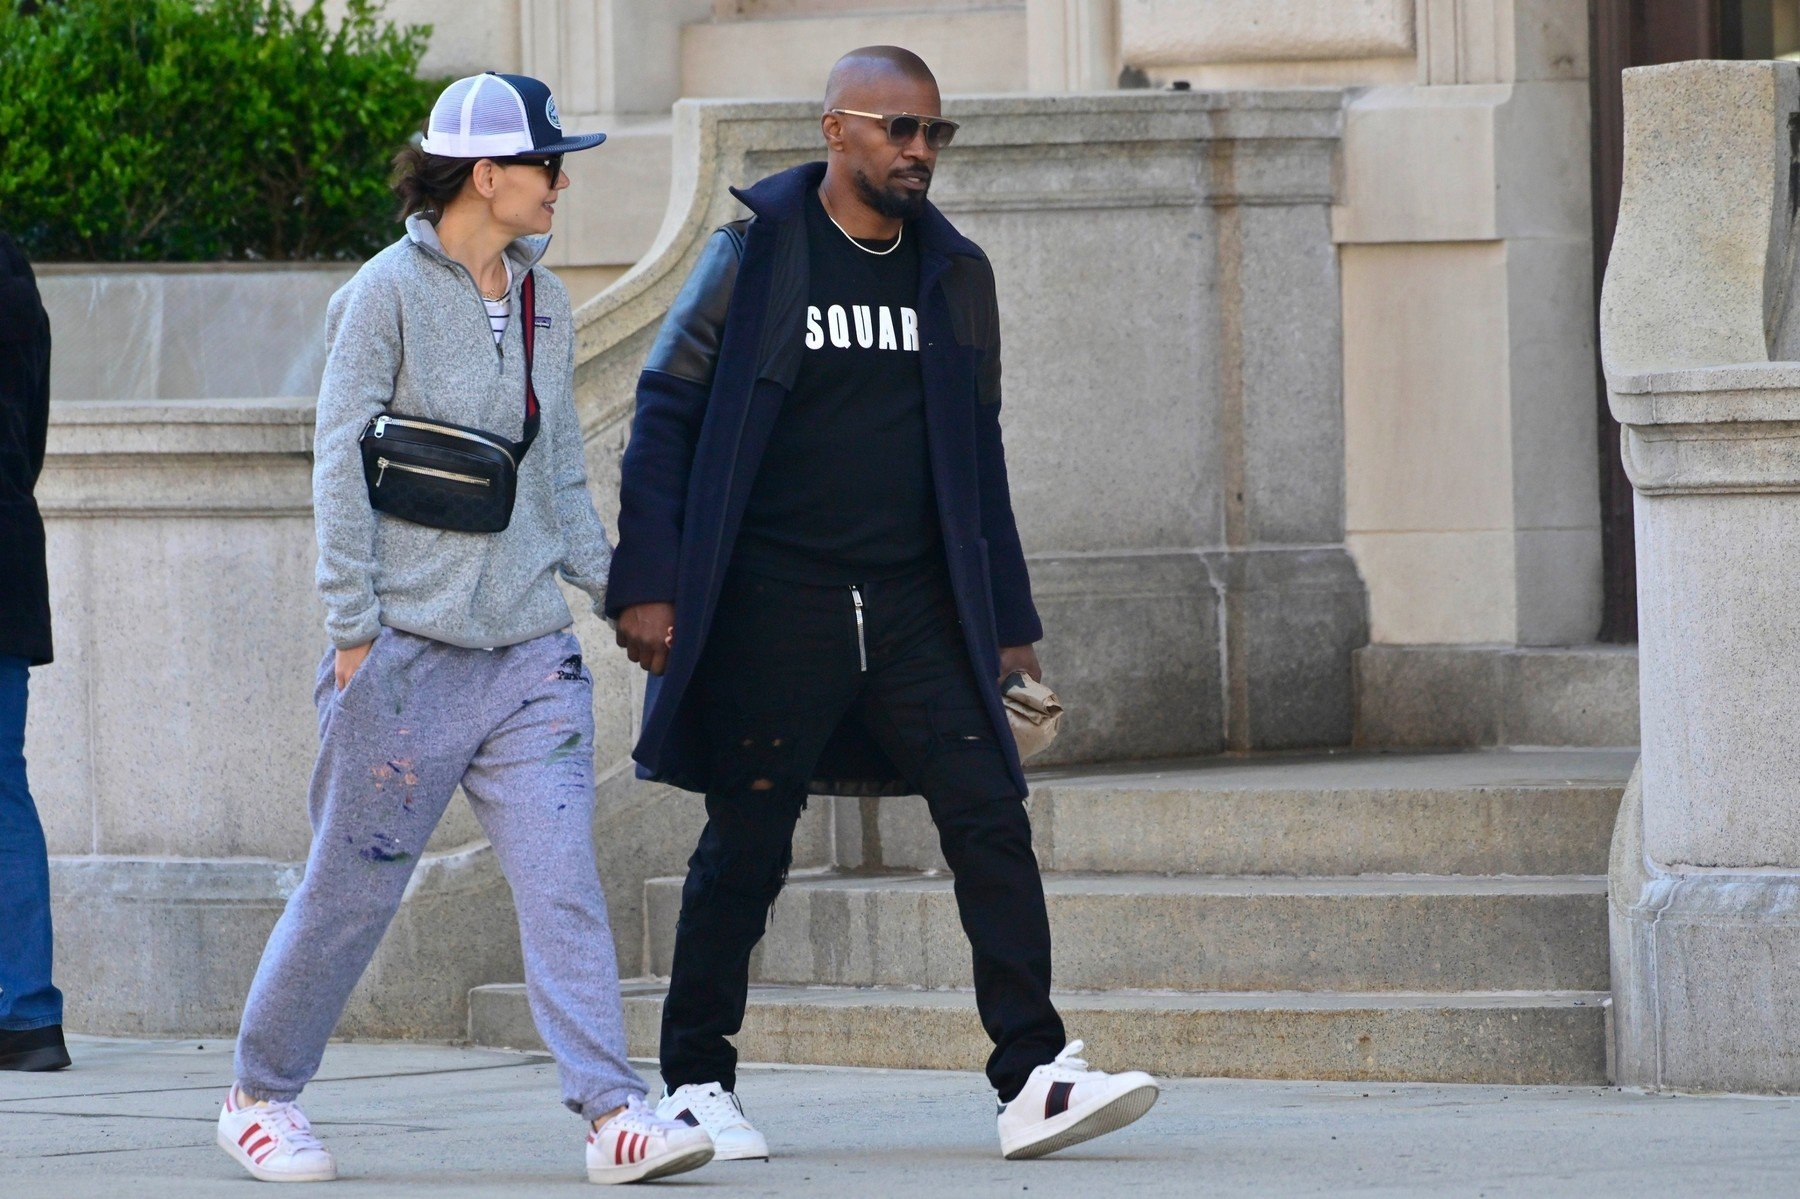 ** RIGHTS: WORLDWIDE EXCEPT IN FRANCE, GERMANY, POLAND ** New York, NY  - *EXCLUSIVE*  - Katie Holmes and Jamie Foxx show their love for each other as they hold hands after brunch. The duo are seen heading to Katie's apartment.  Pictured: Jamie Foxx, Katie Holmes  BACKGRID USA 16 APRIL 2019, Image: 426442997, License: Rights-managed, Restrictions: , Model Release: no, Credit line: Profimedia, Backgrid USA